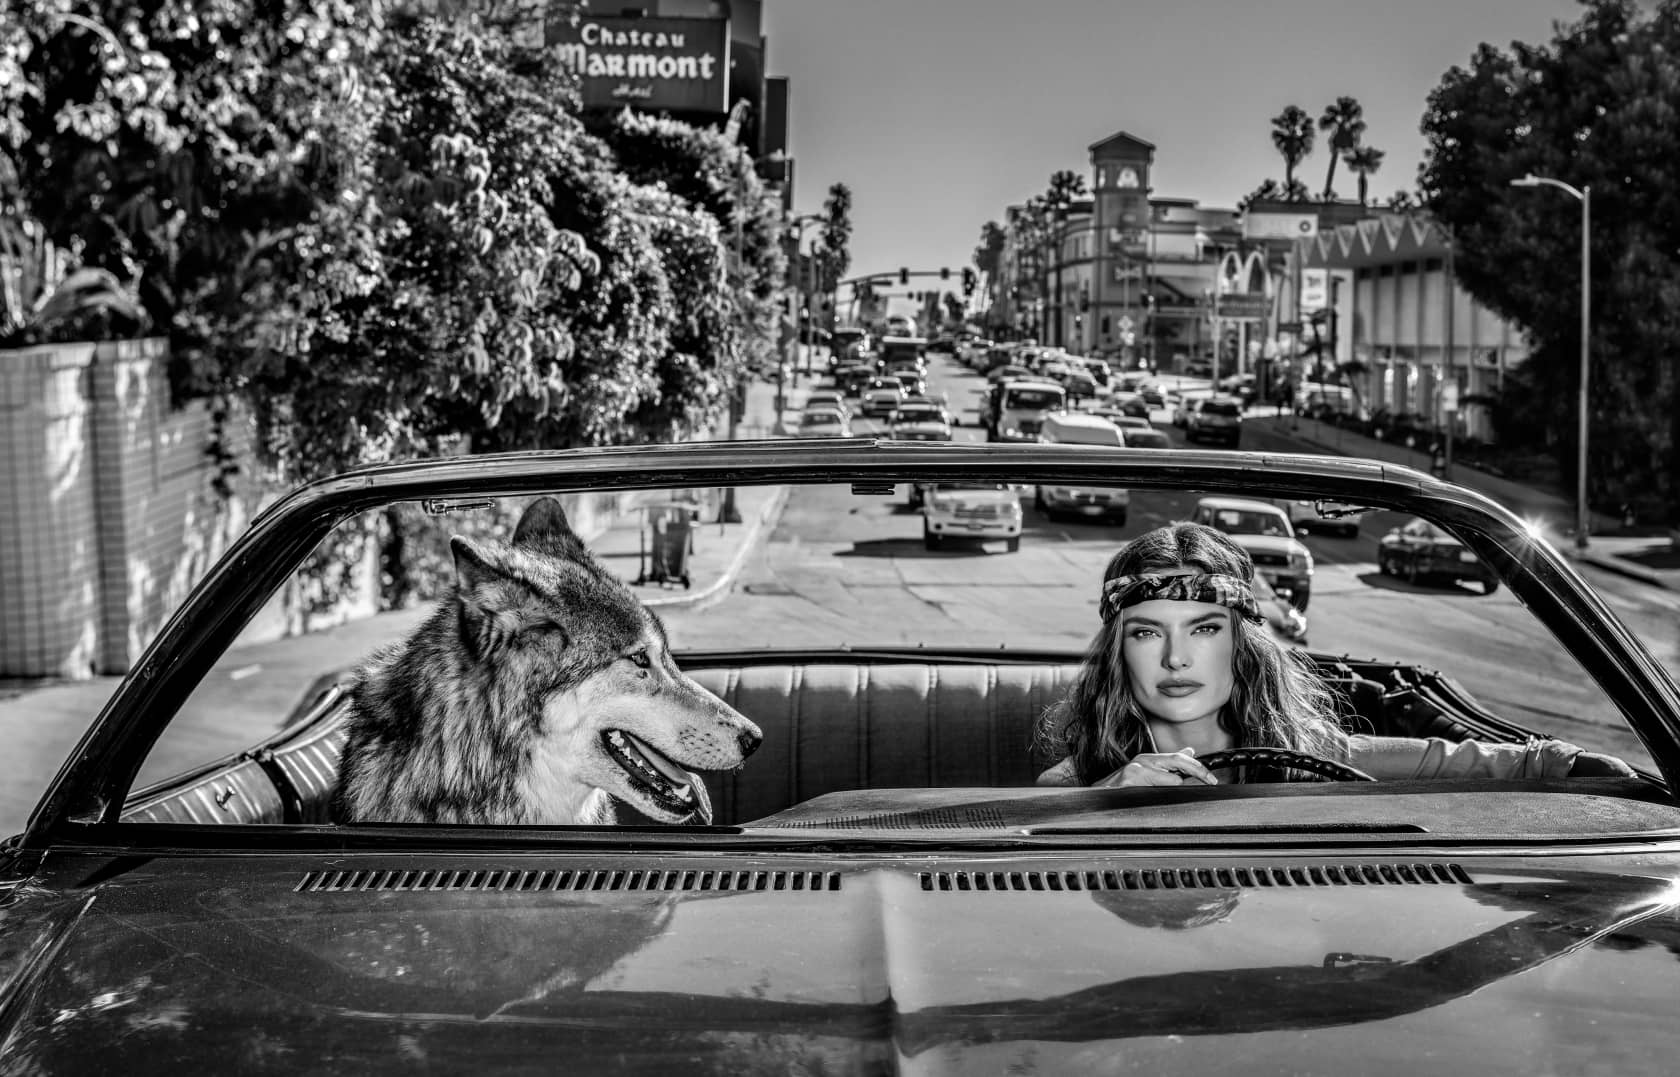 David Yarrow Chateau Marmont Archival Pigment Print